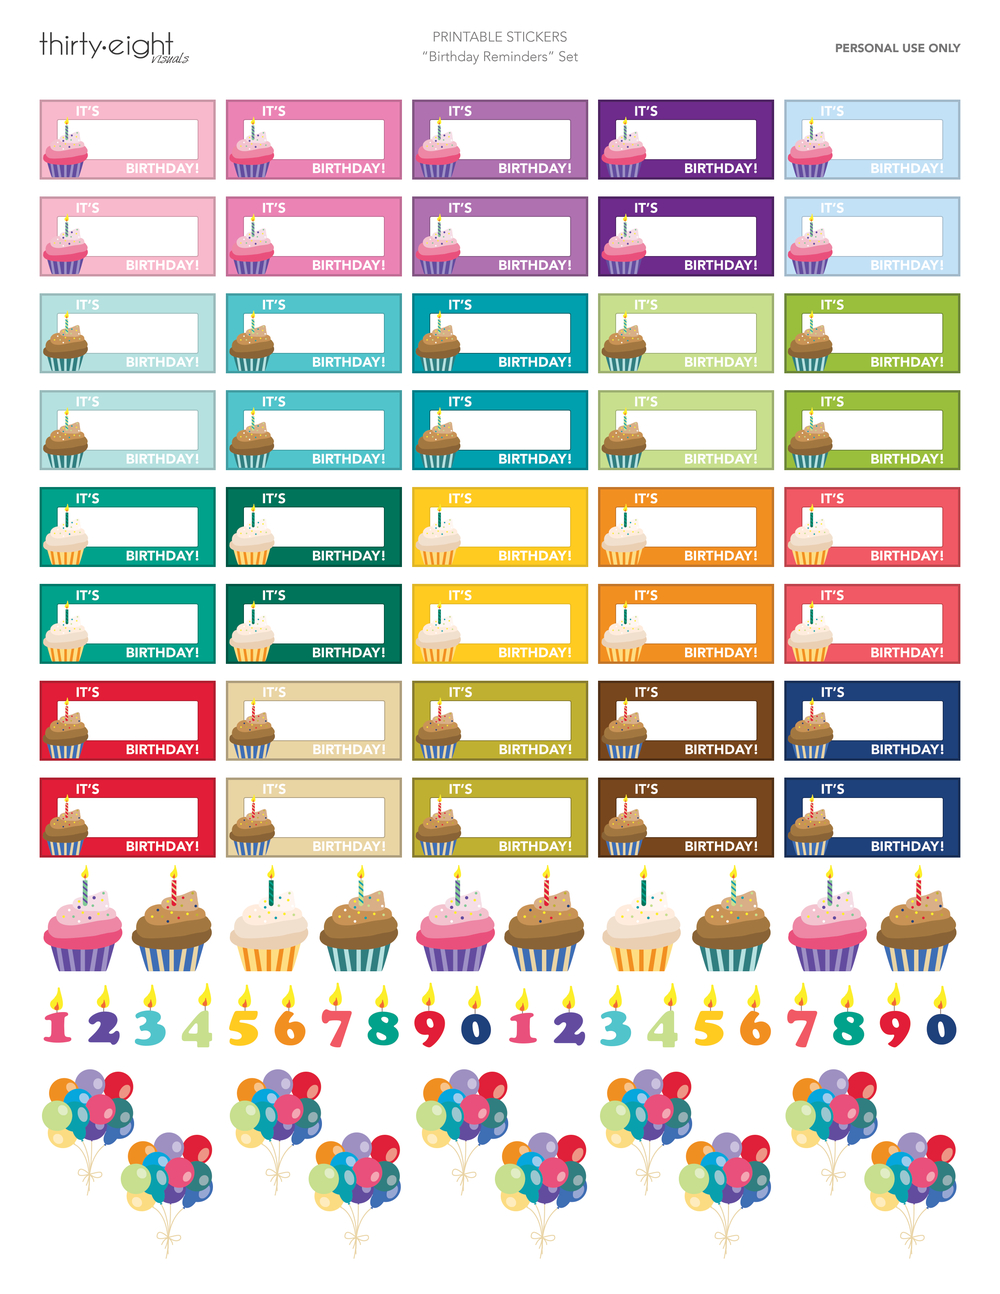 Cute Birthday Reminder Stickers For Your Planner! Click Here